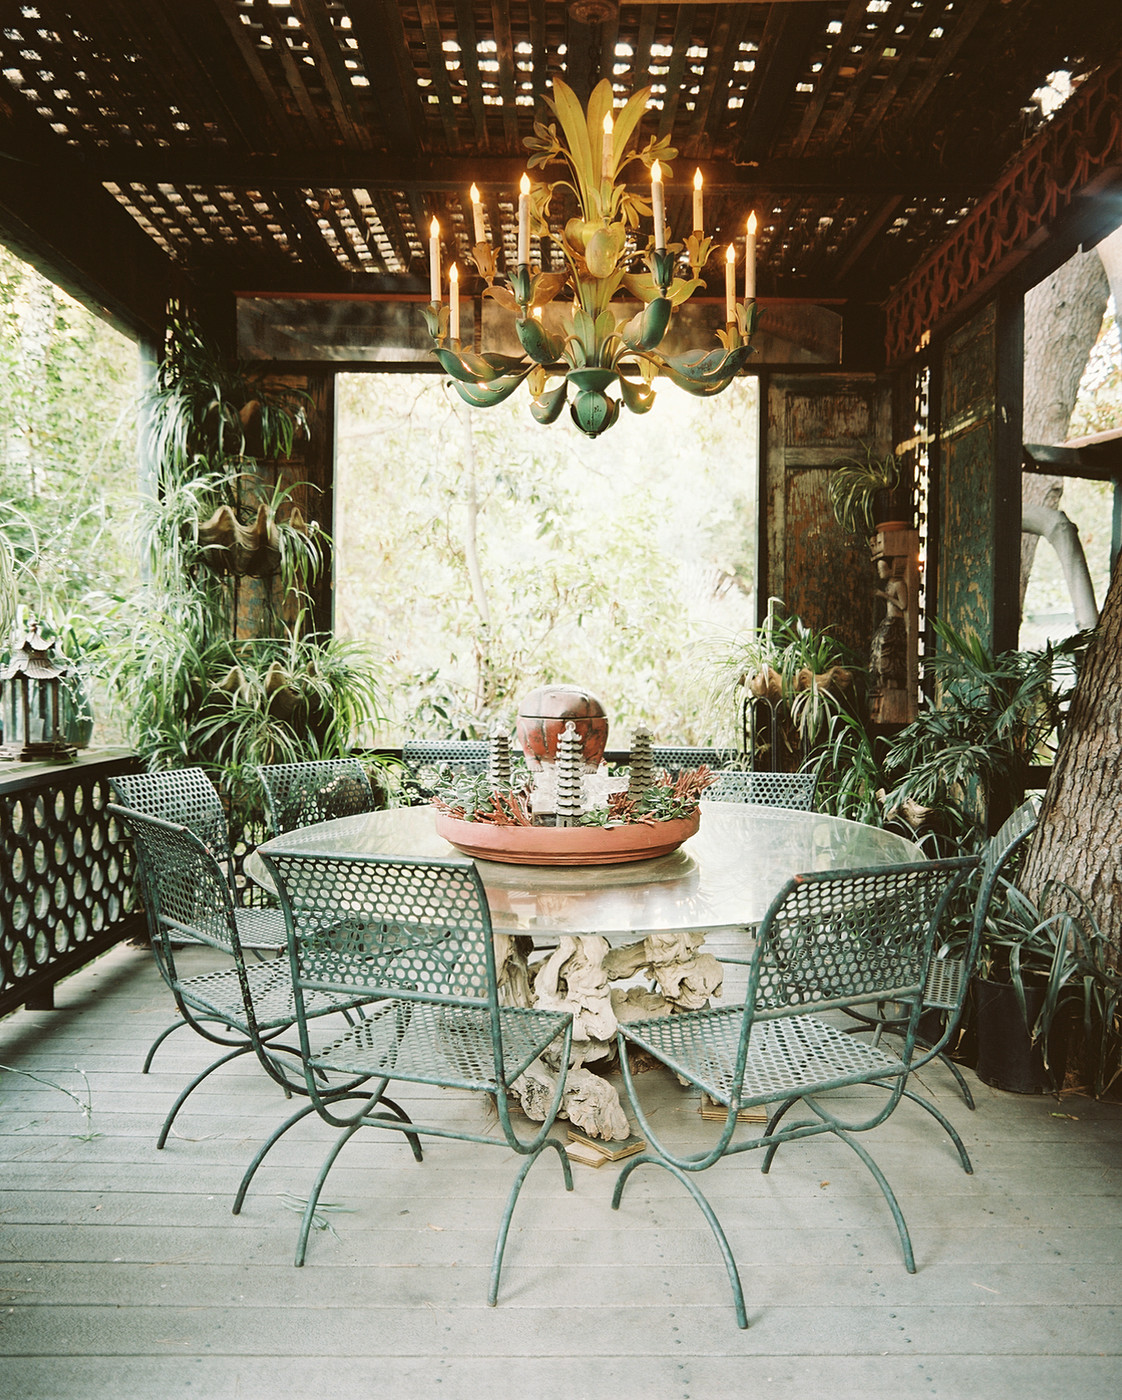 Outdoor Chandeliers pletely Crazy or Utterly Brilliant